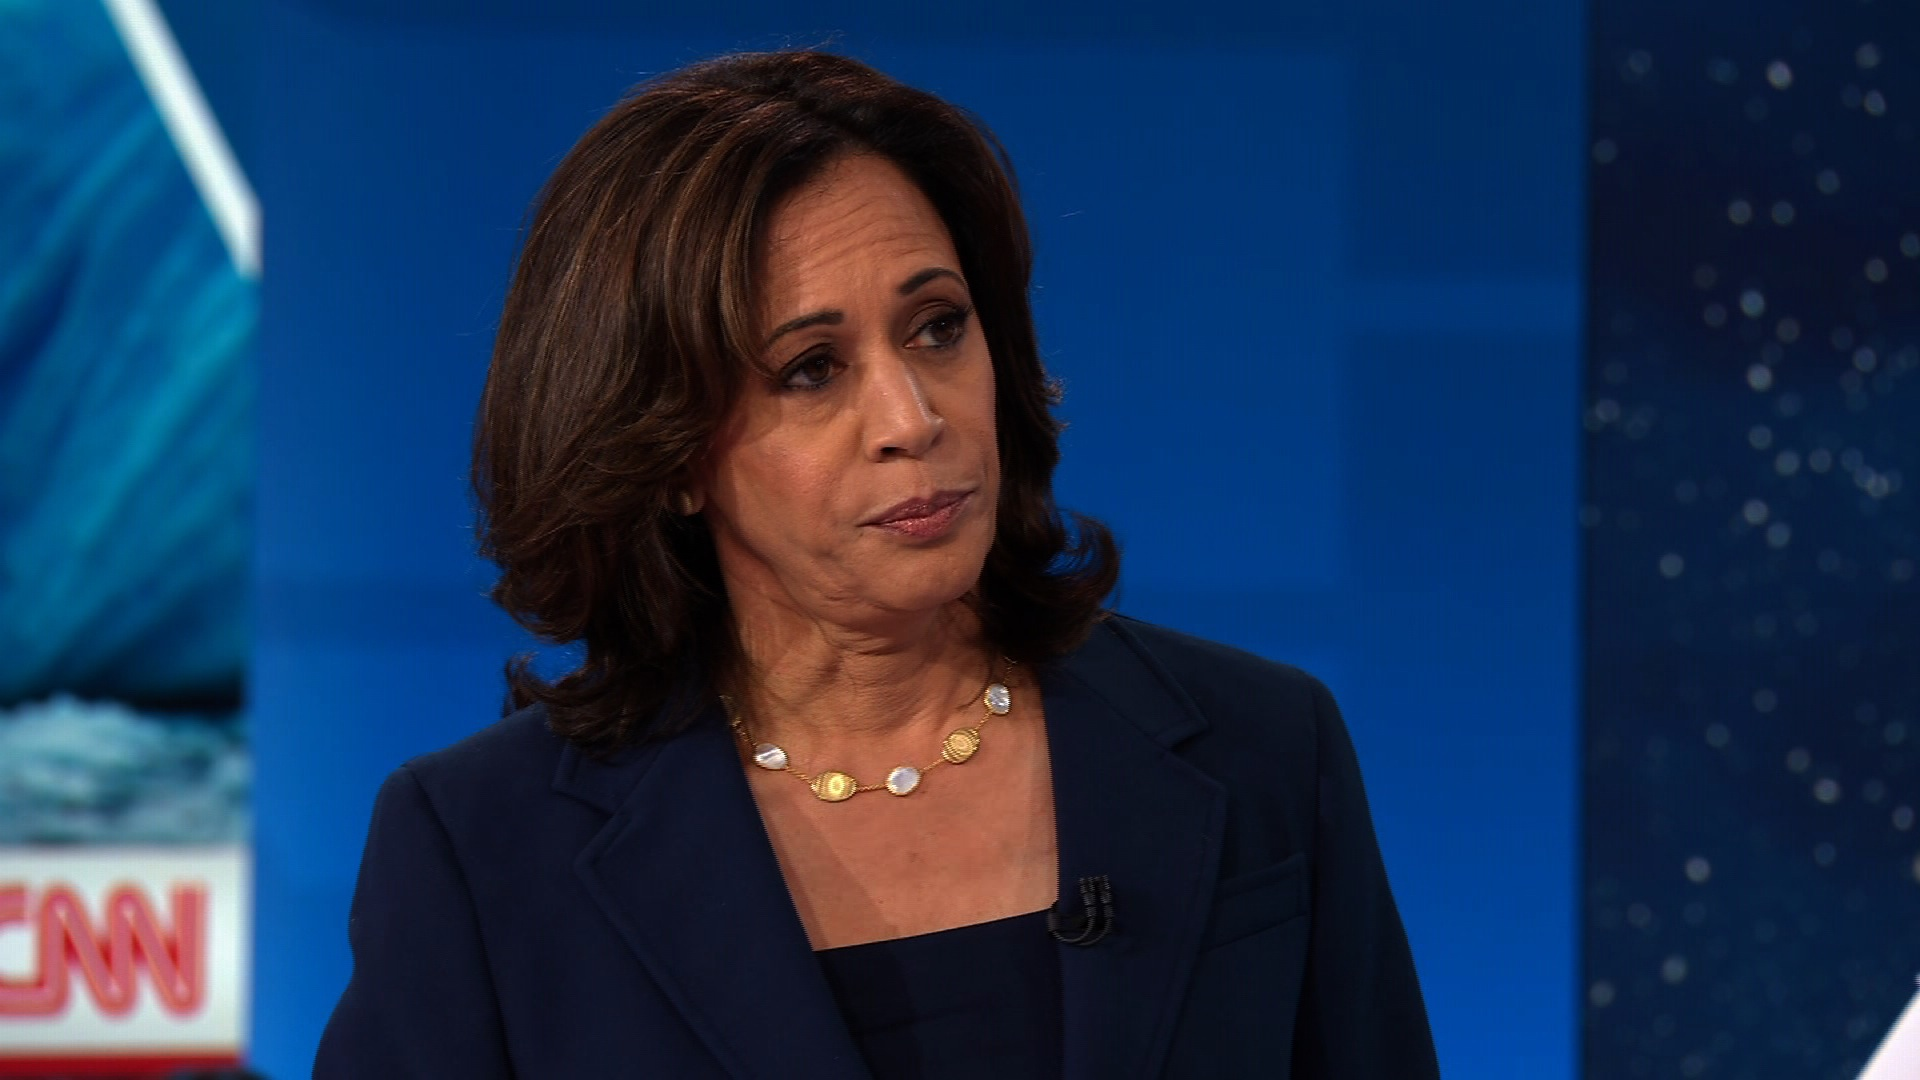 Kamala Harris on stage at the CNN Climate Town Hall